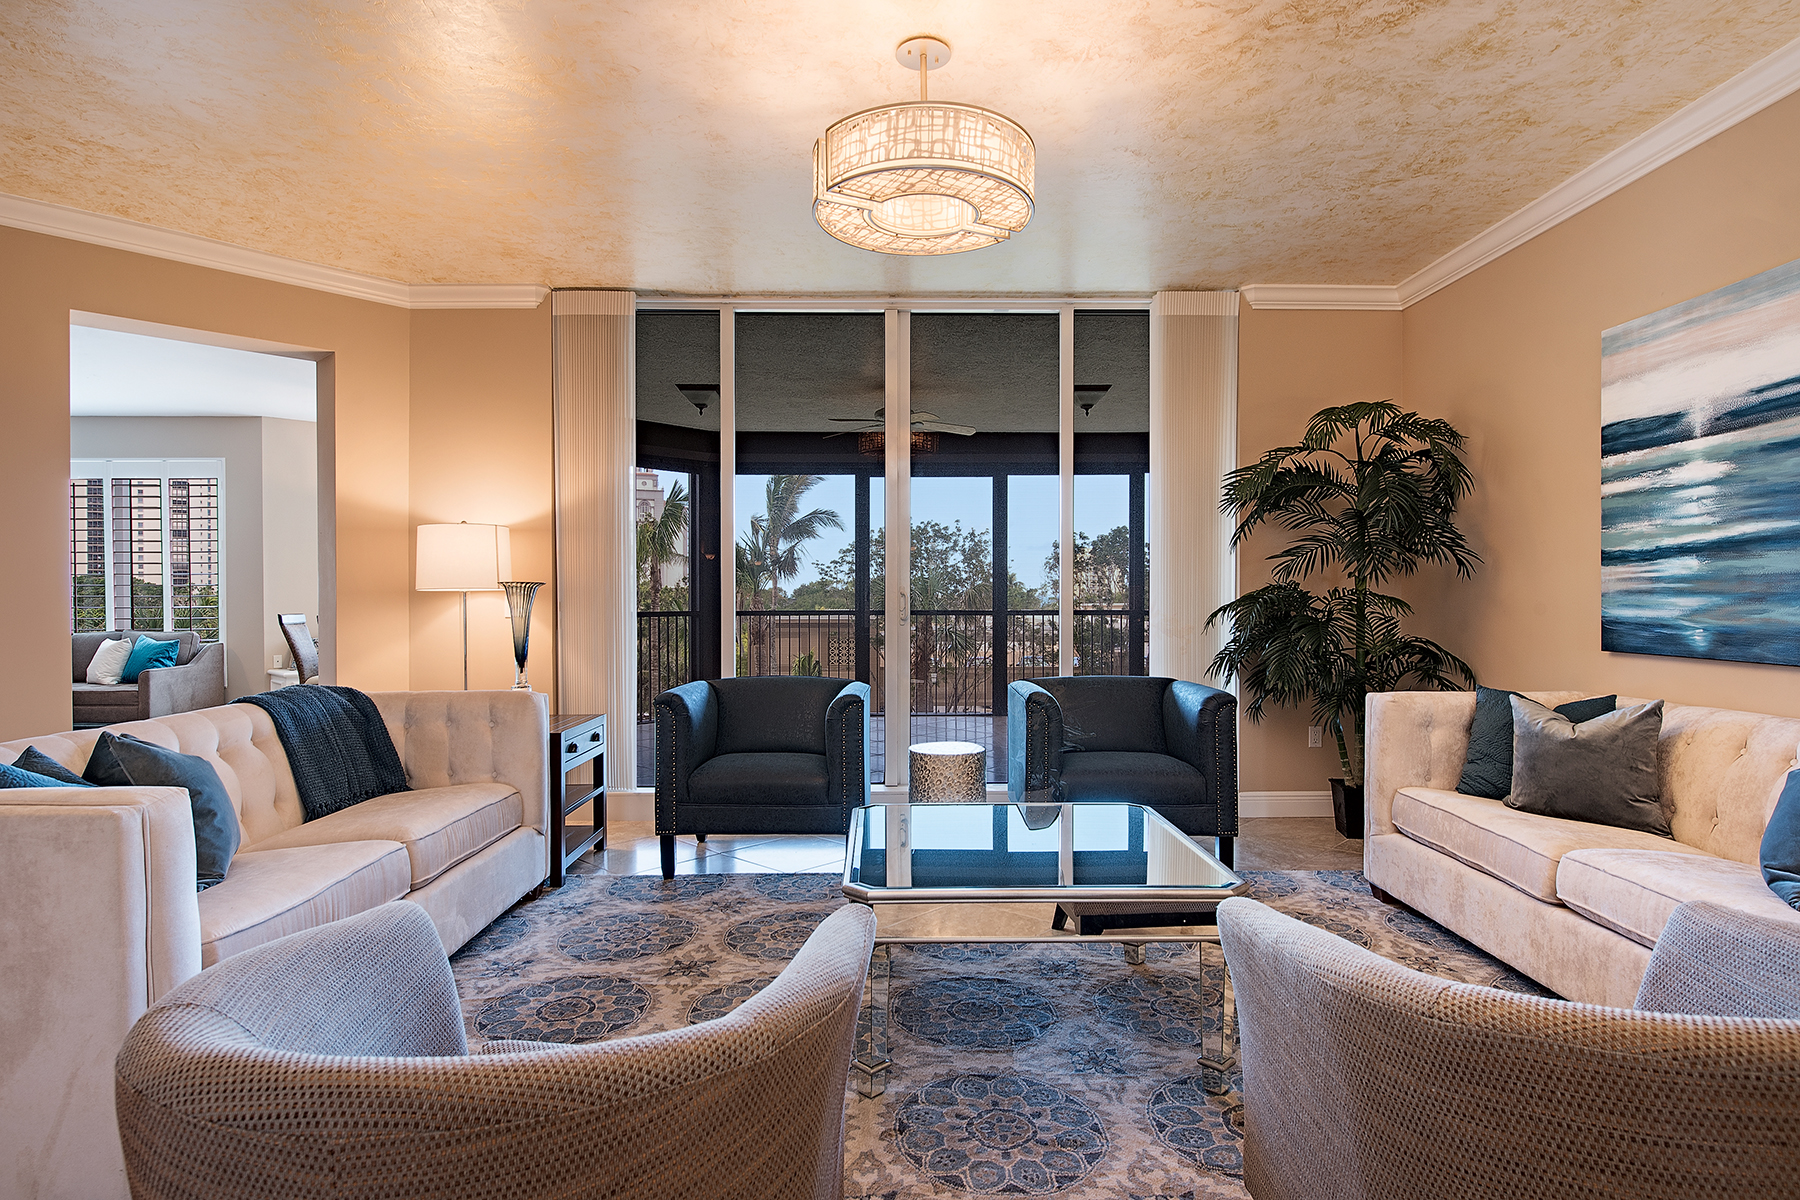 Condominium for Sale at PELICAN BAY - TRIESTE @ BAY COLONY 8787 Bay Colony Dr 306, Naples, Florida, 34108 United States